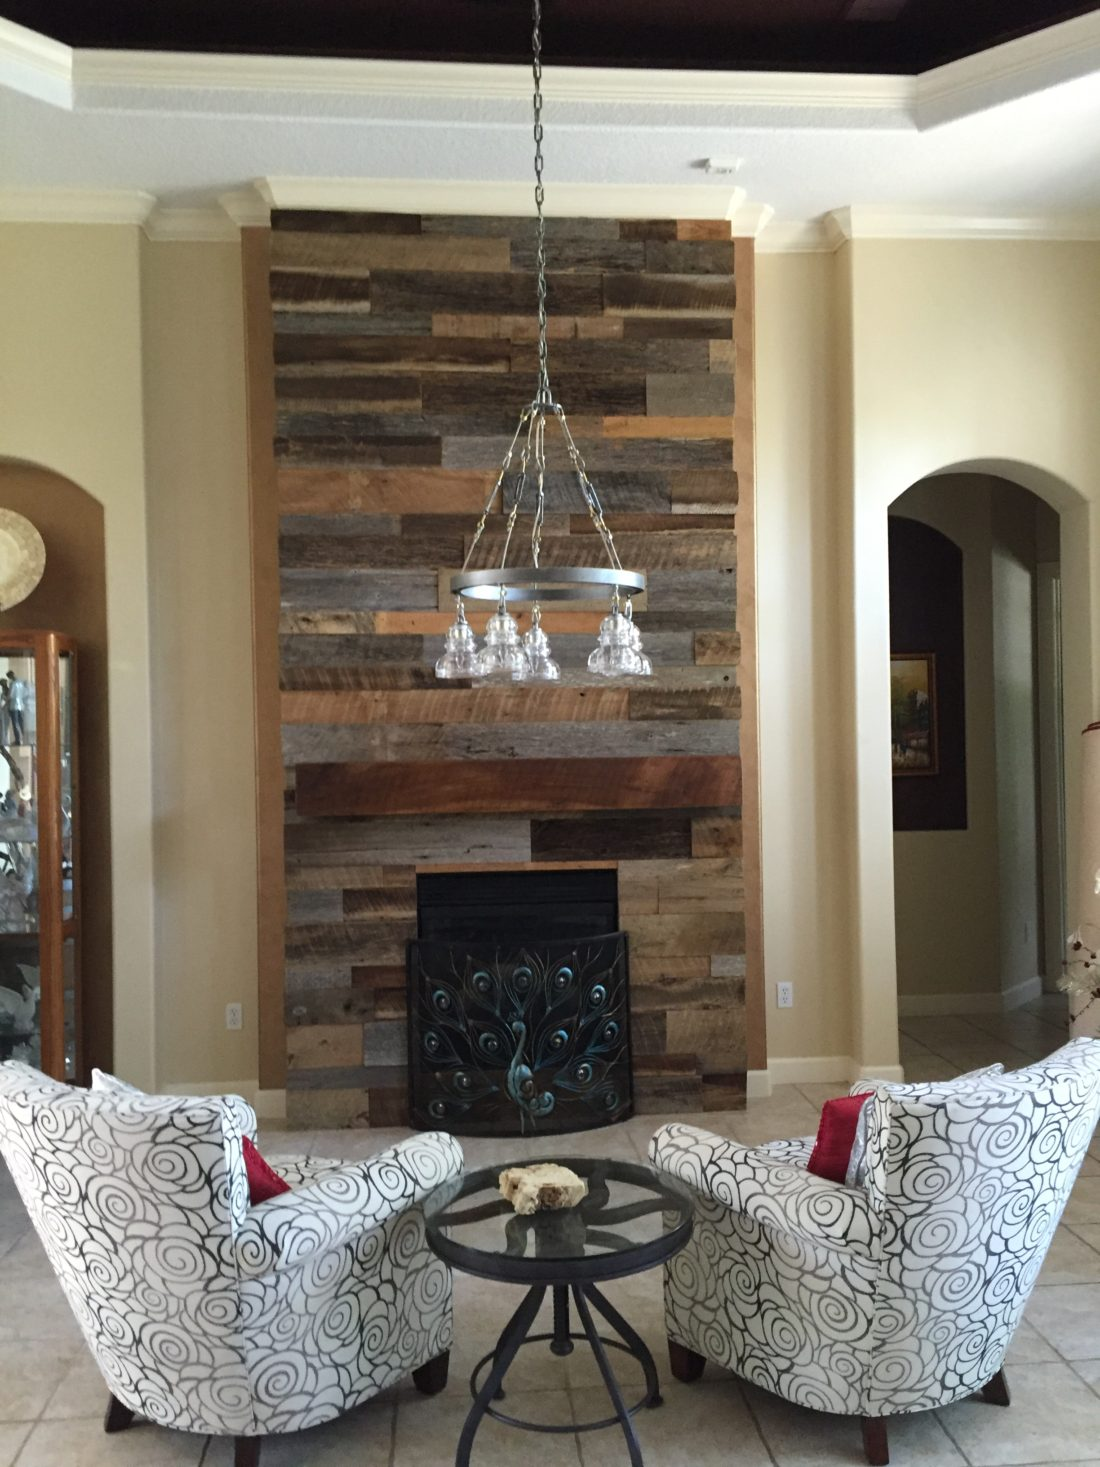 Reclaimed wood wall living room - Reclaimed Wood Wall Fireplace With Mantle